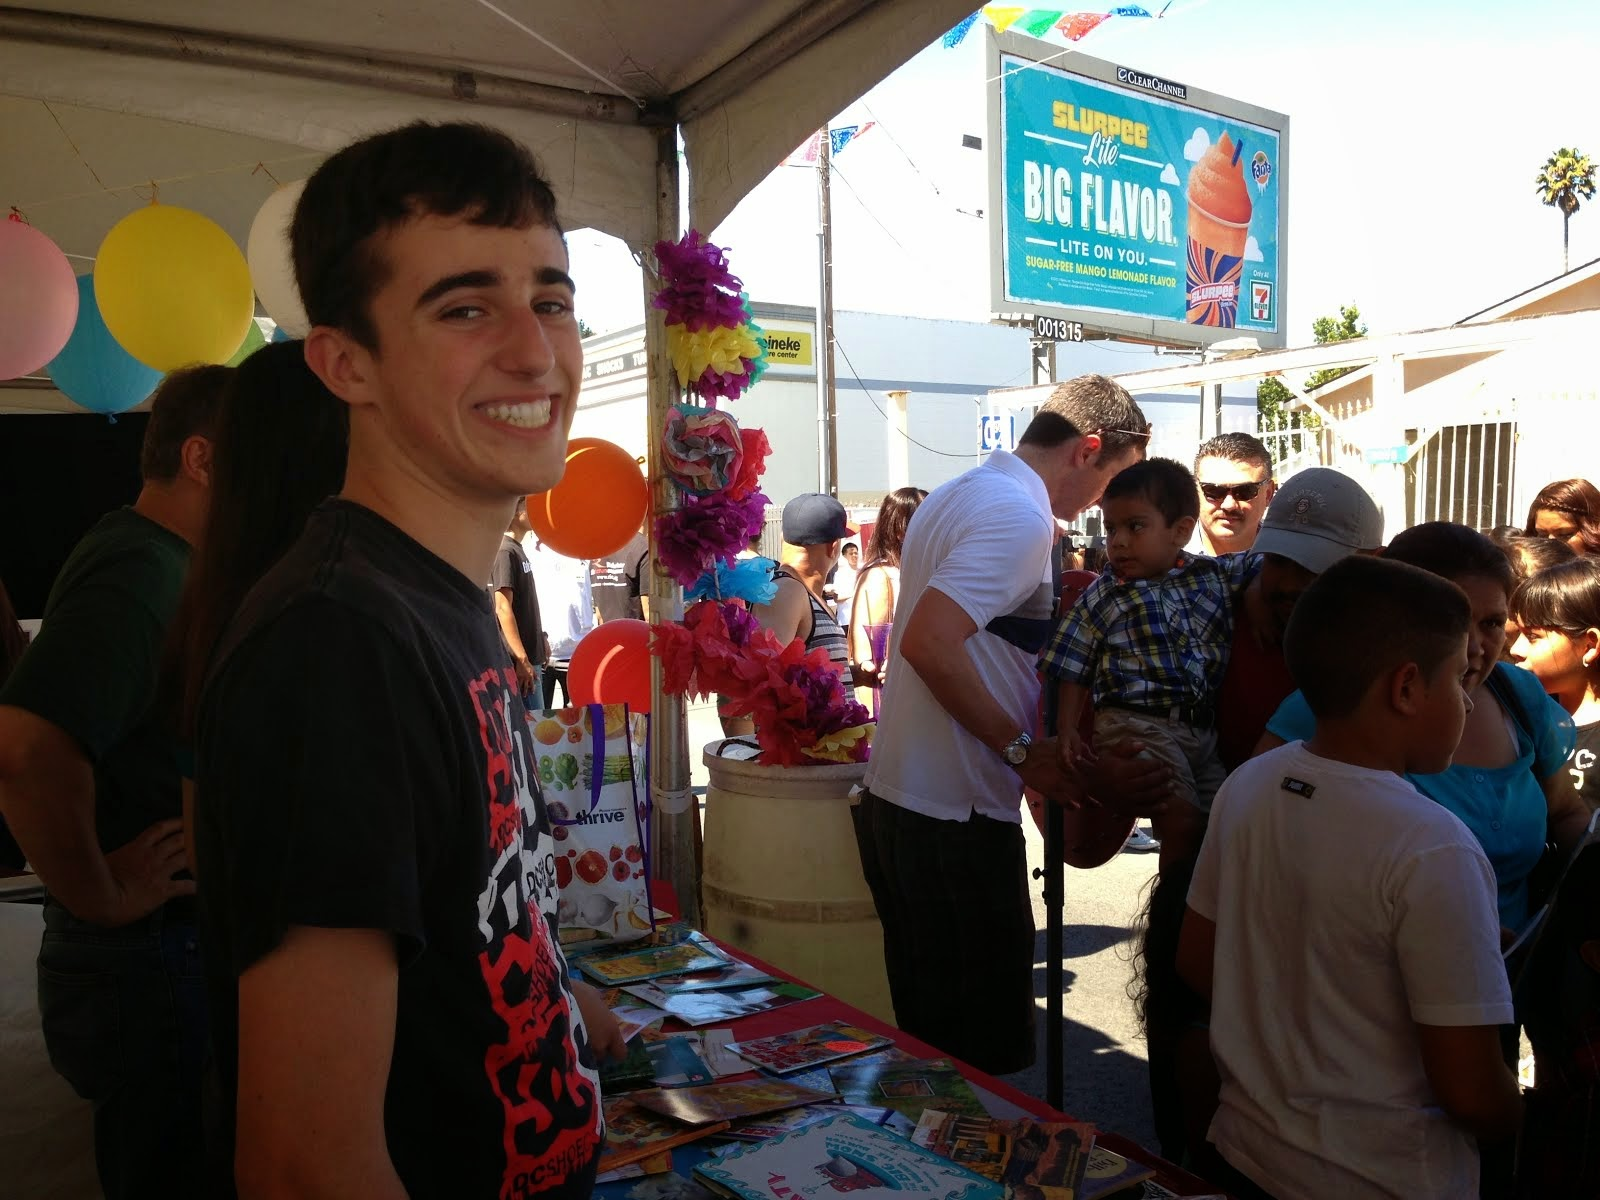 North Fair Oaks Festival - August 17, 2014